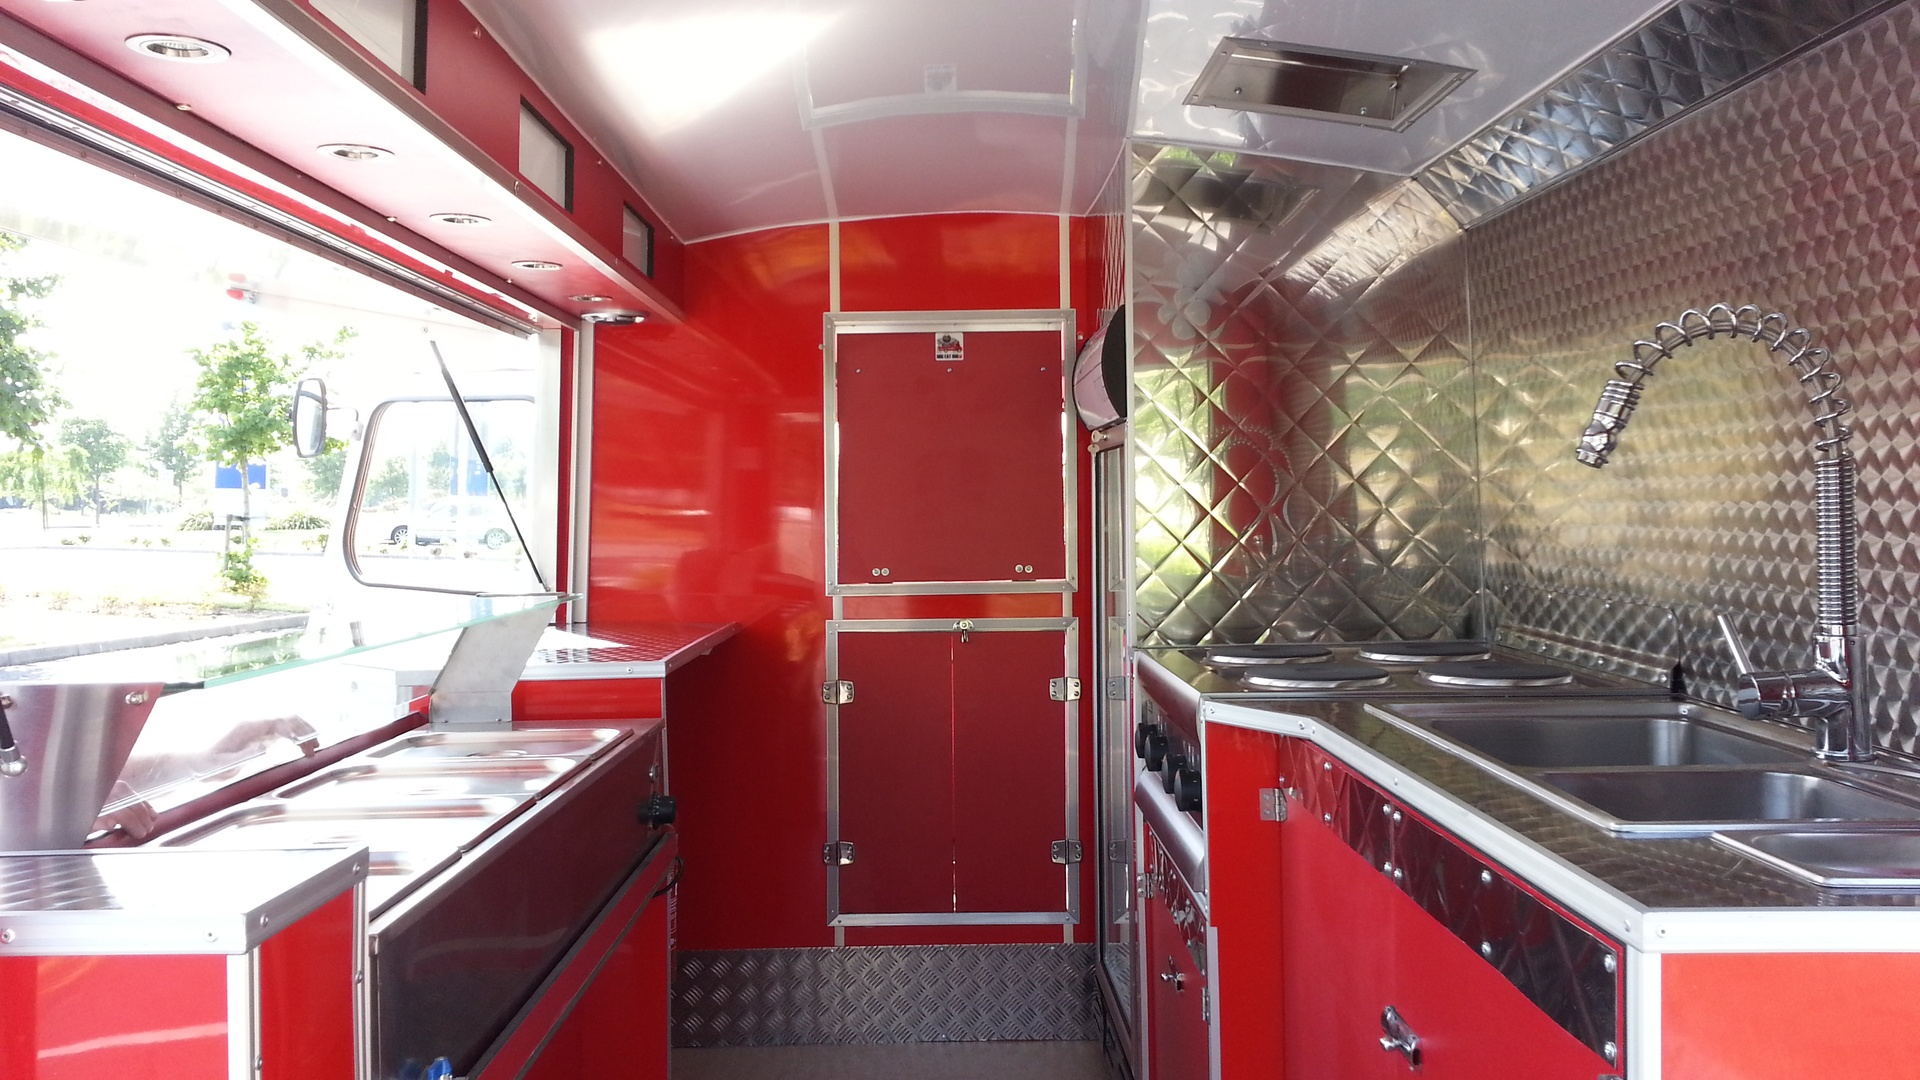 25 of the best food truck designs design galleries paste - Photos Of Catering Trailers Motorised Catering Vans Mobile Kiosks Catering Kiosks